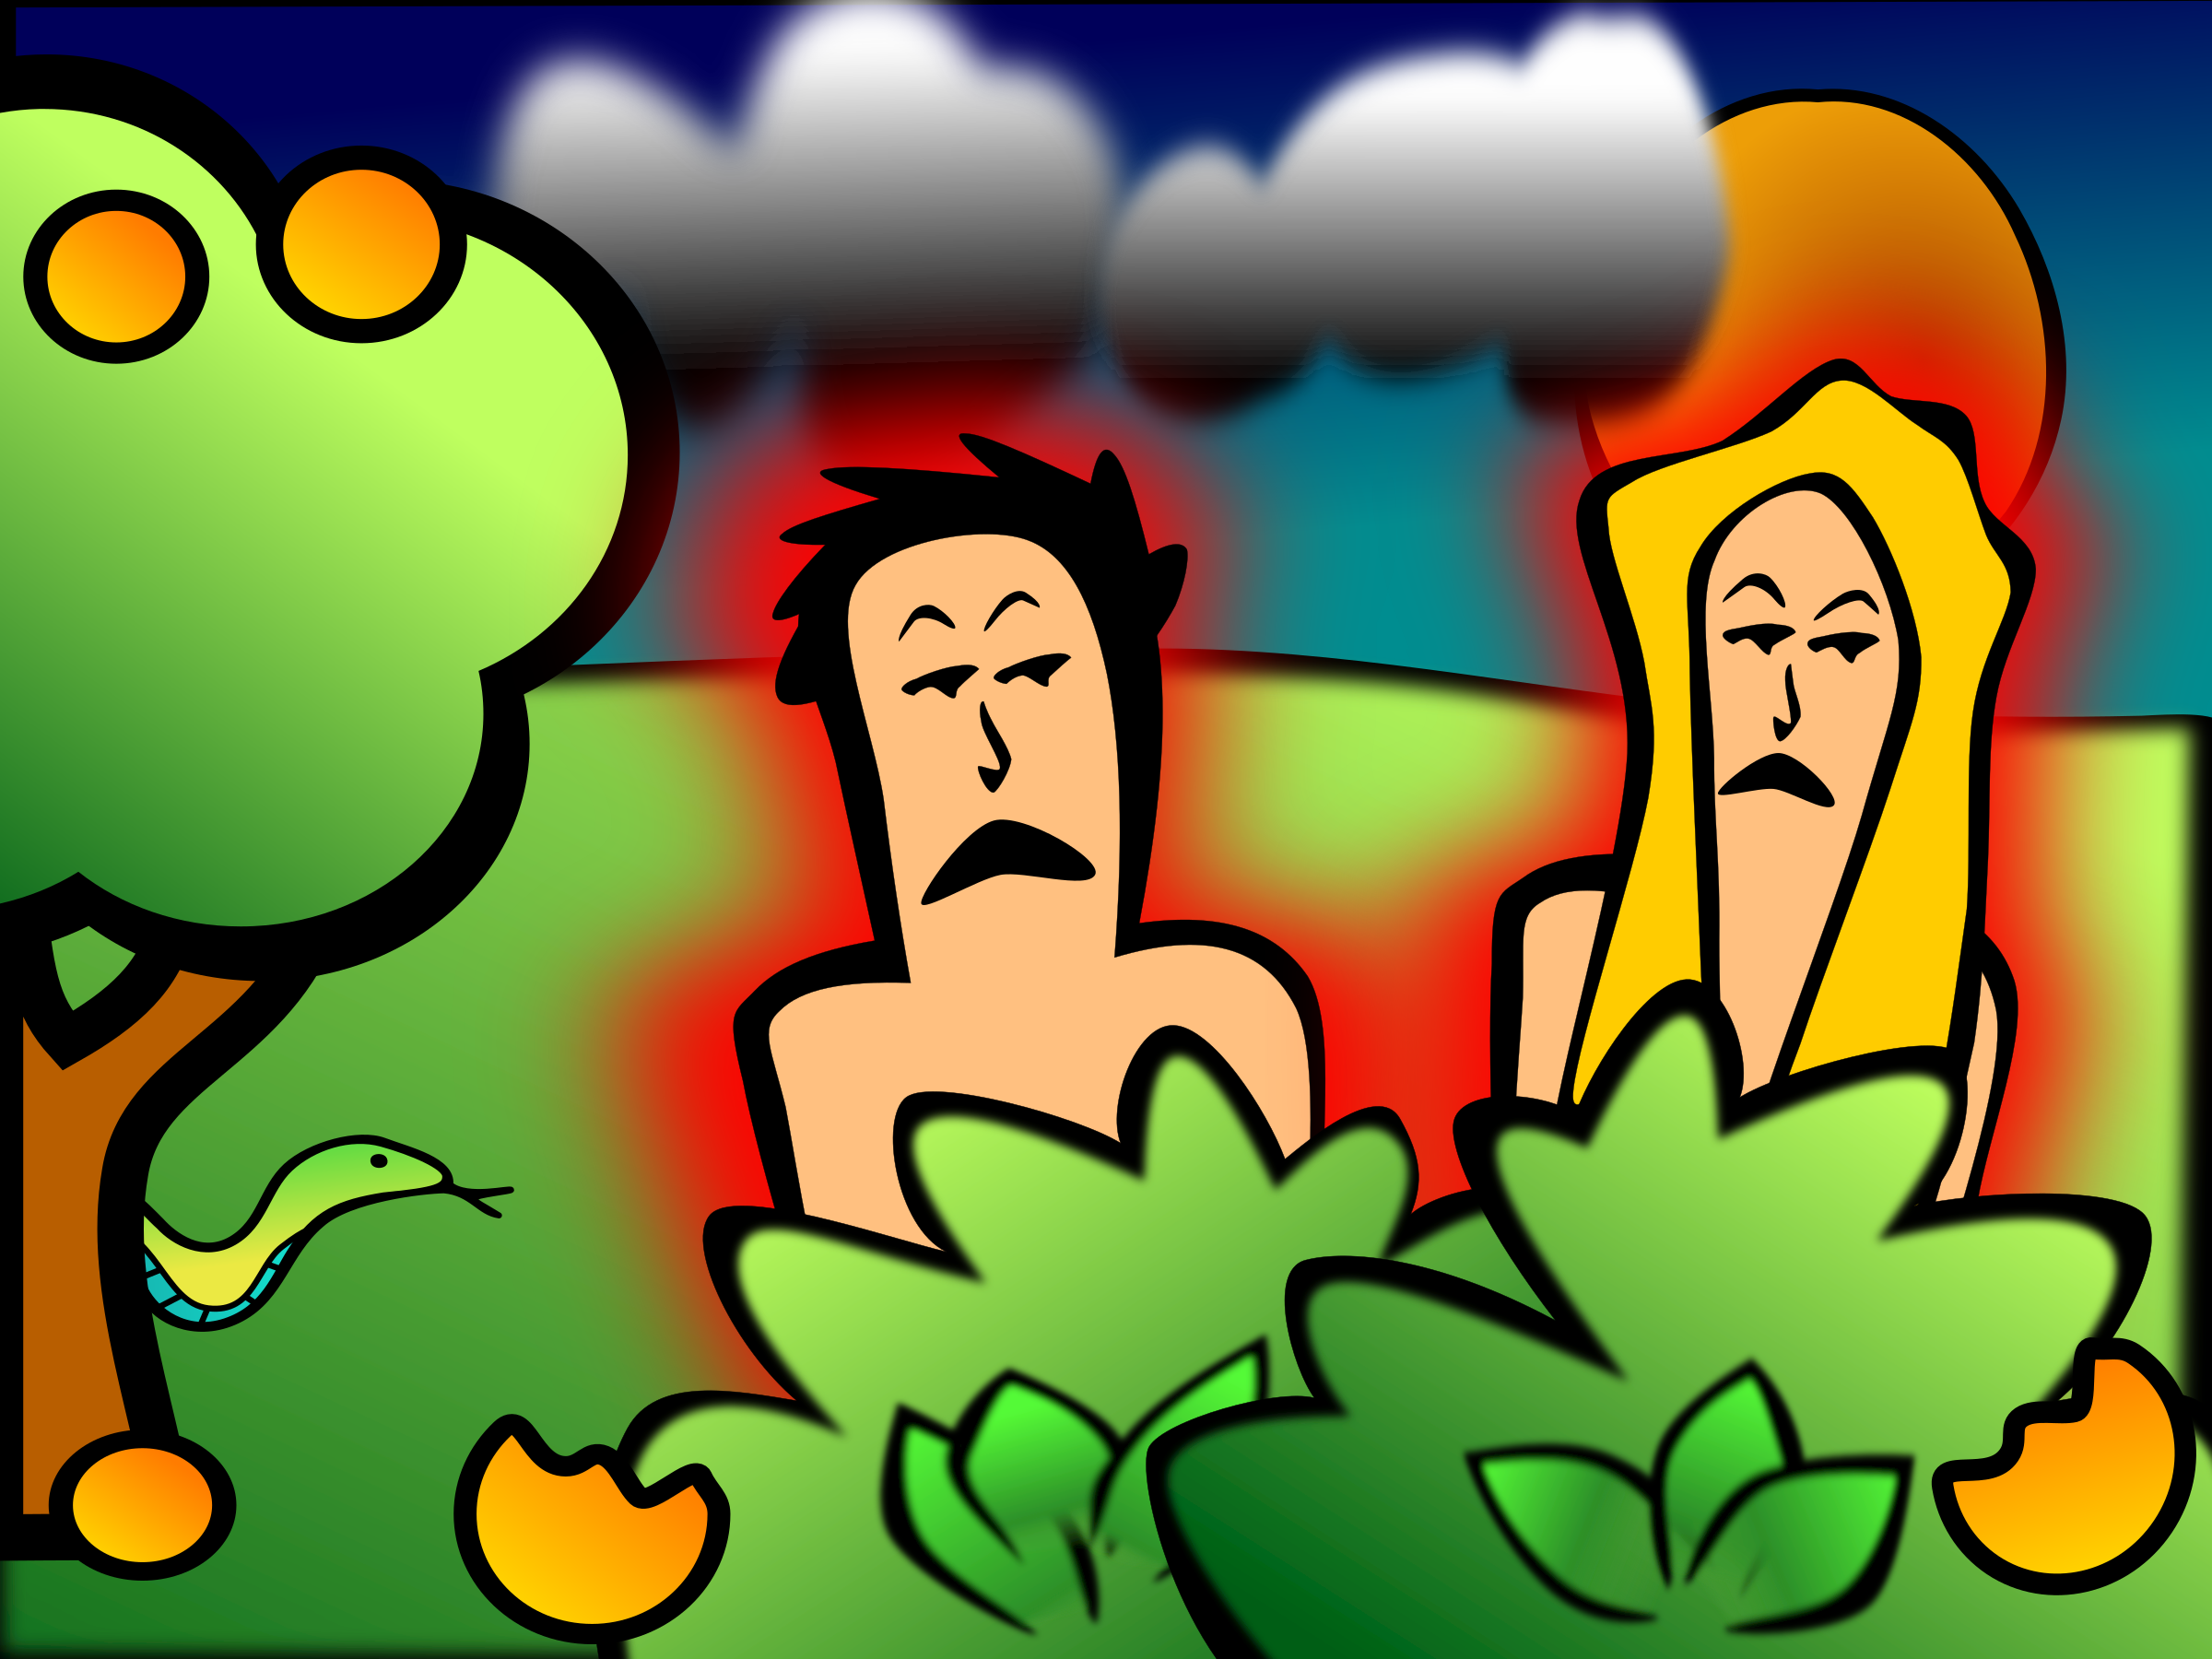 Adam And Eve clipart Adam And Eve In The Garden Of Eden Clipart Adam eve in & garden